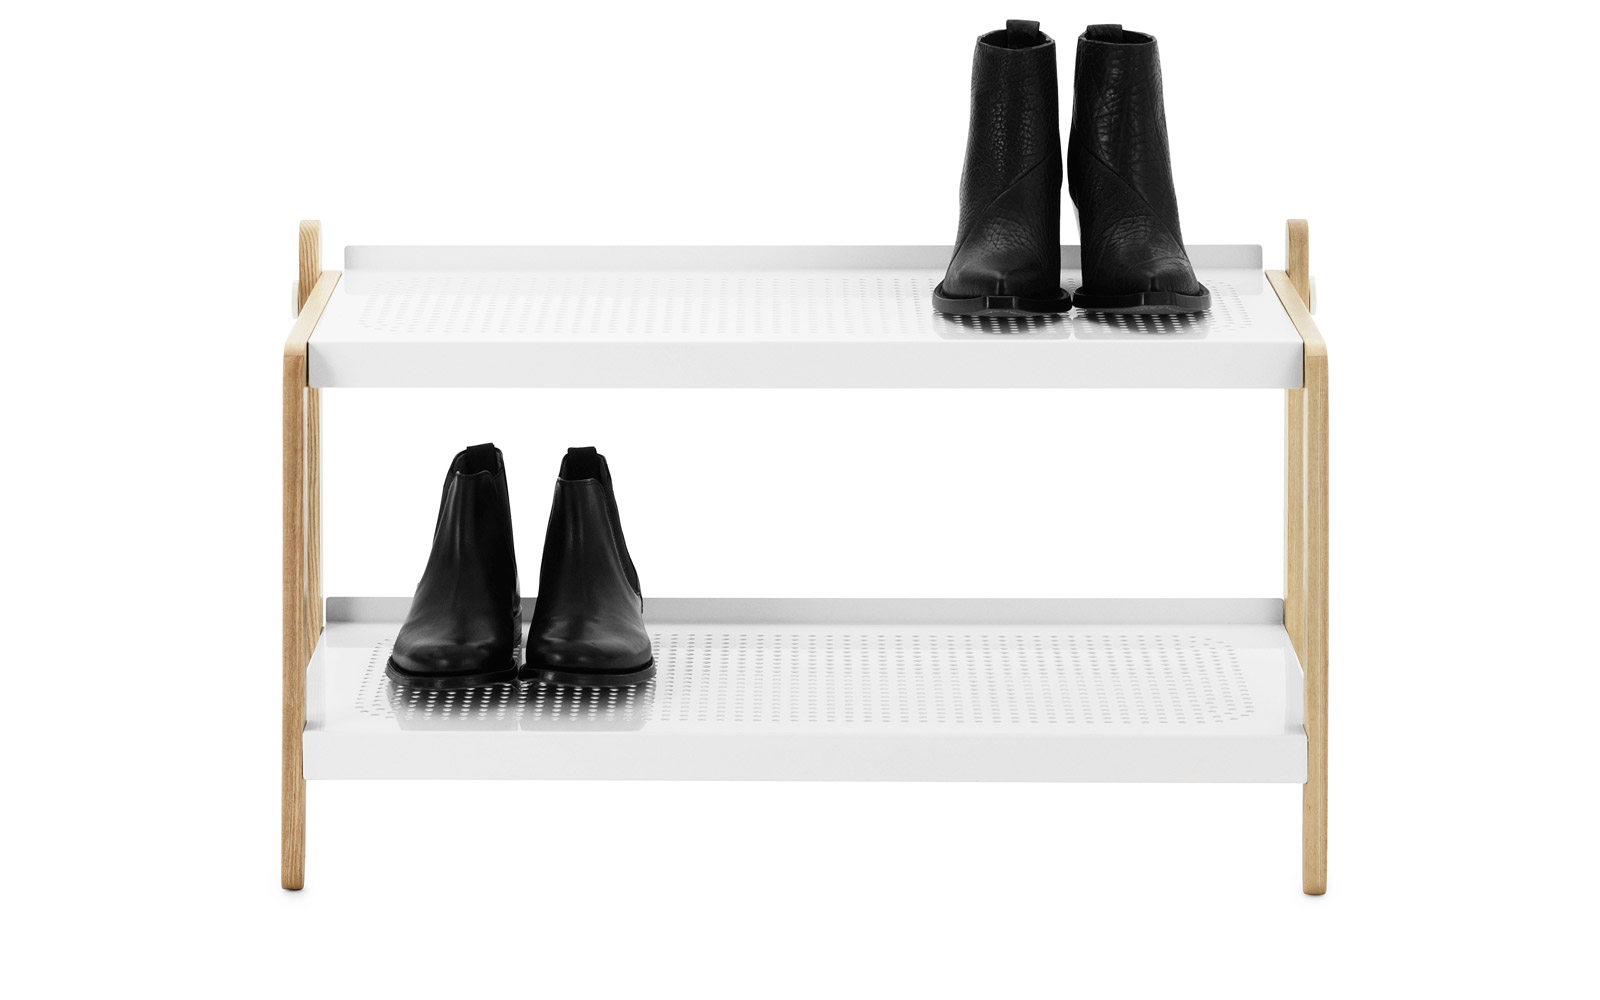 Functional Art Shoe Rack Interior Decorating Accessories